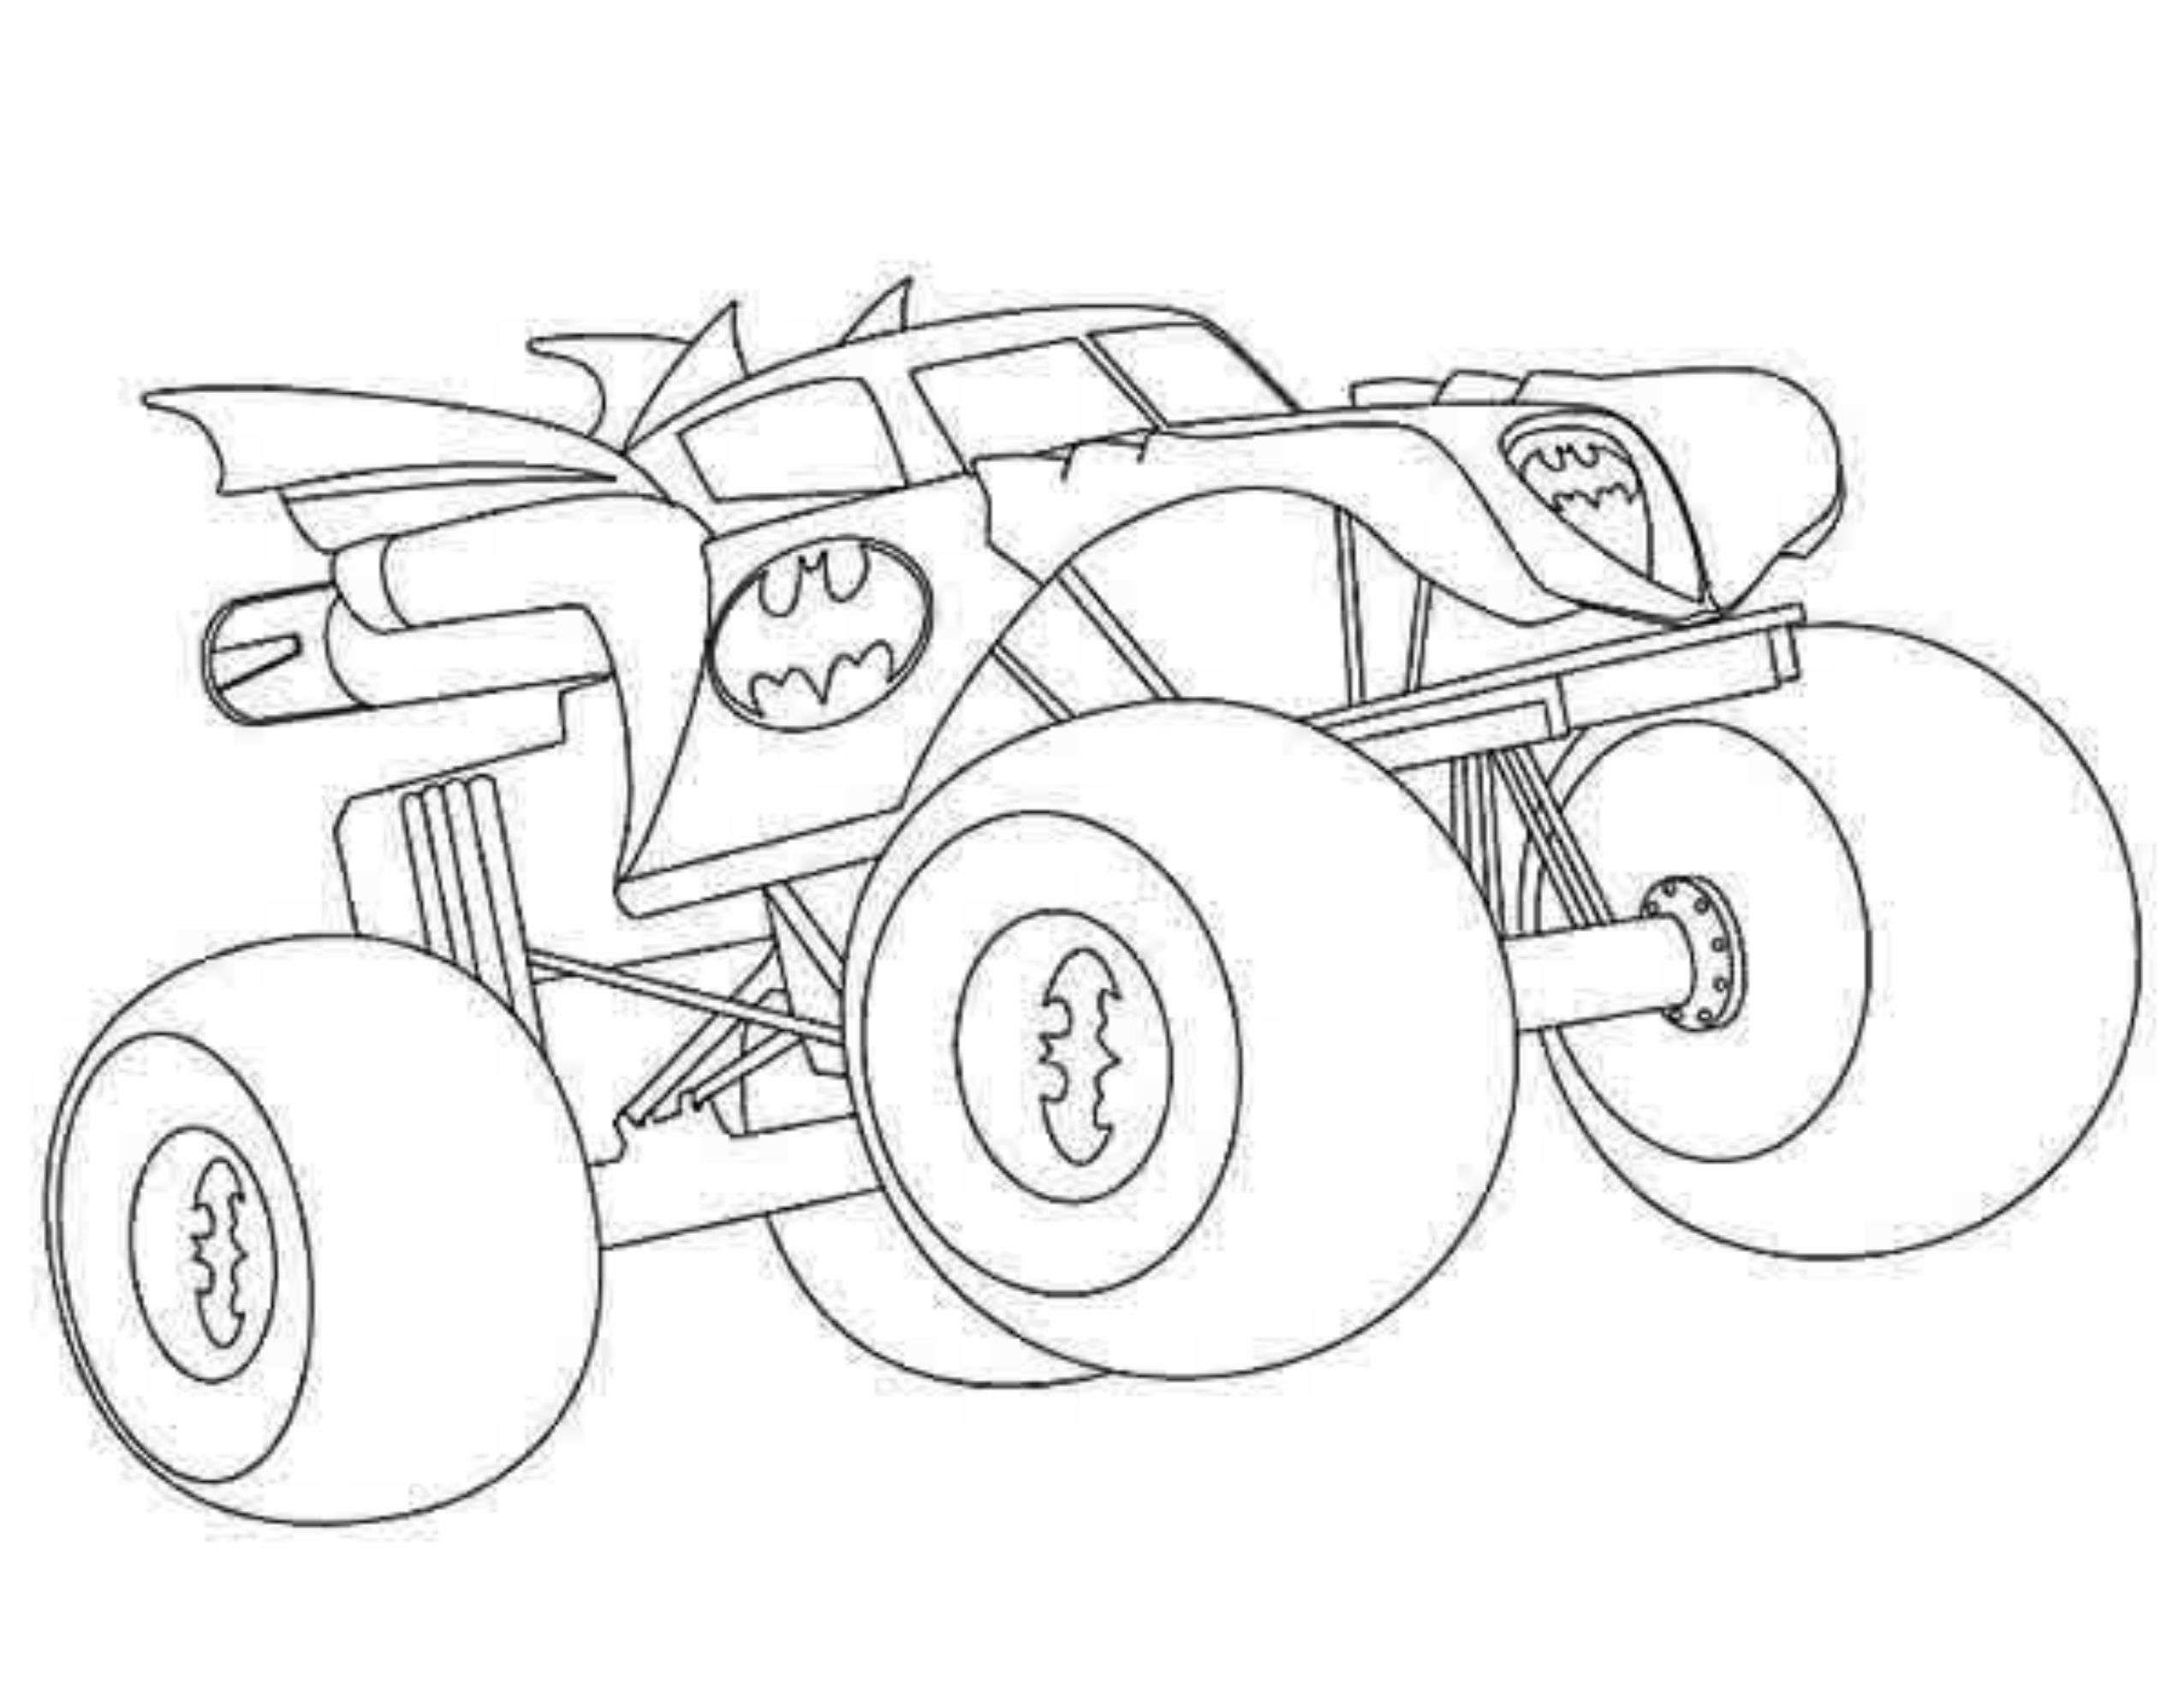 Online coloring hot wheels - Hot Wheels Coloring Pages Monster Truck Coloring Pages Wheels